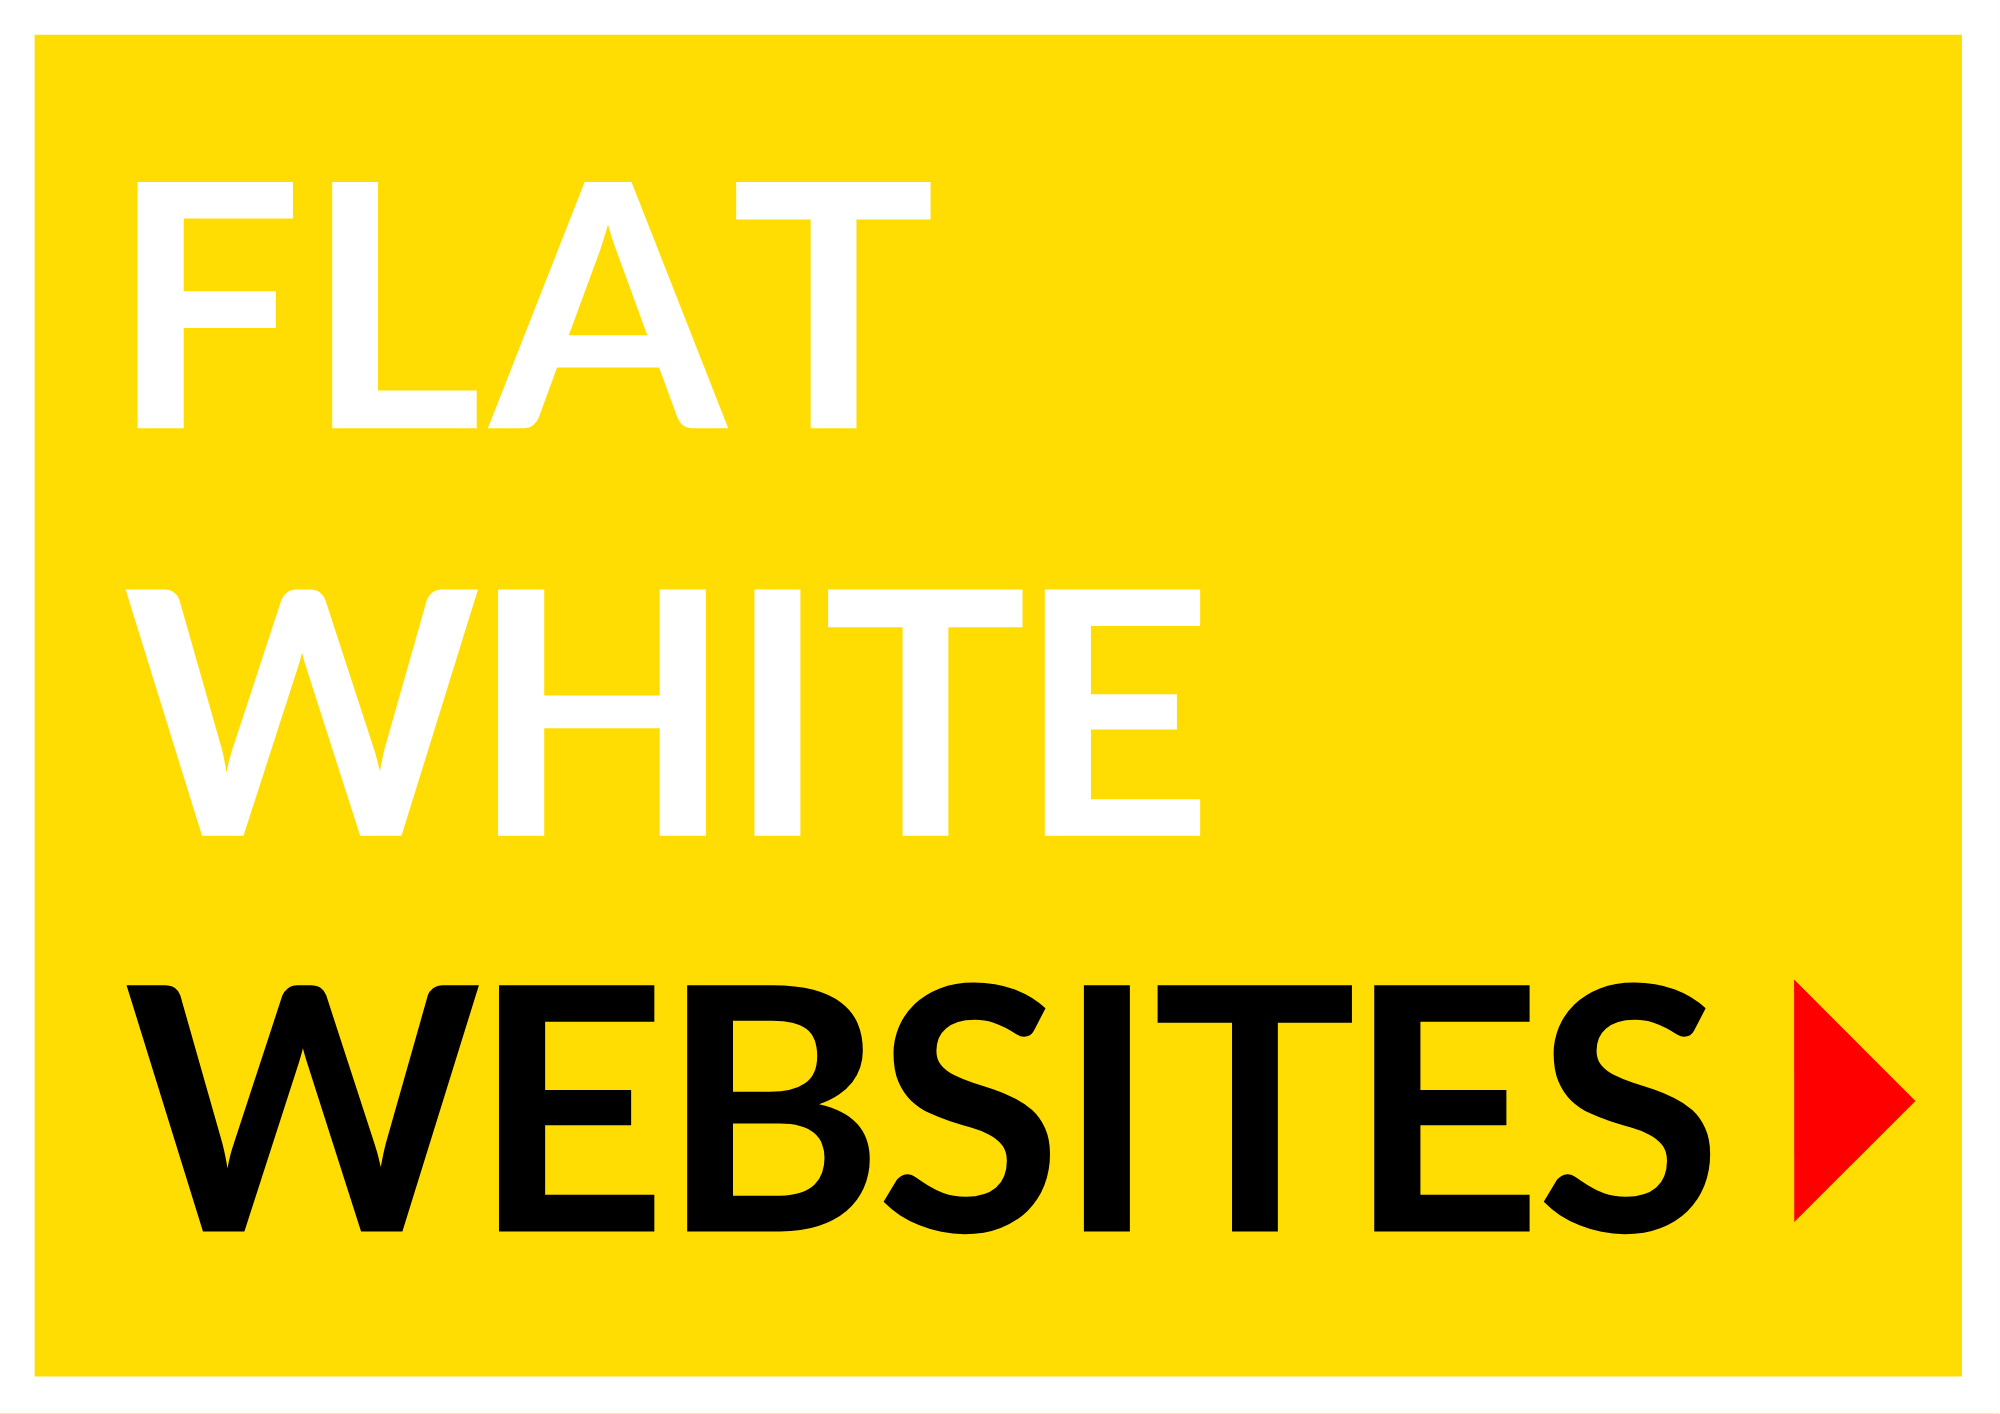 FLAT WHITE WEBSITES